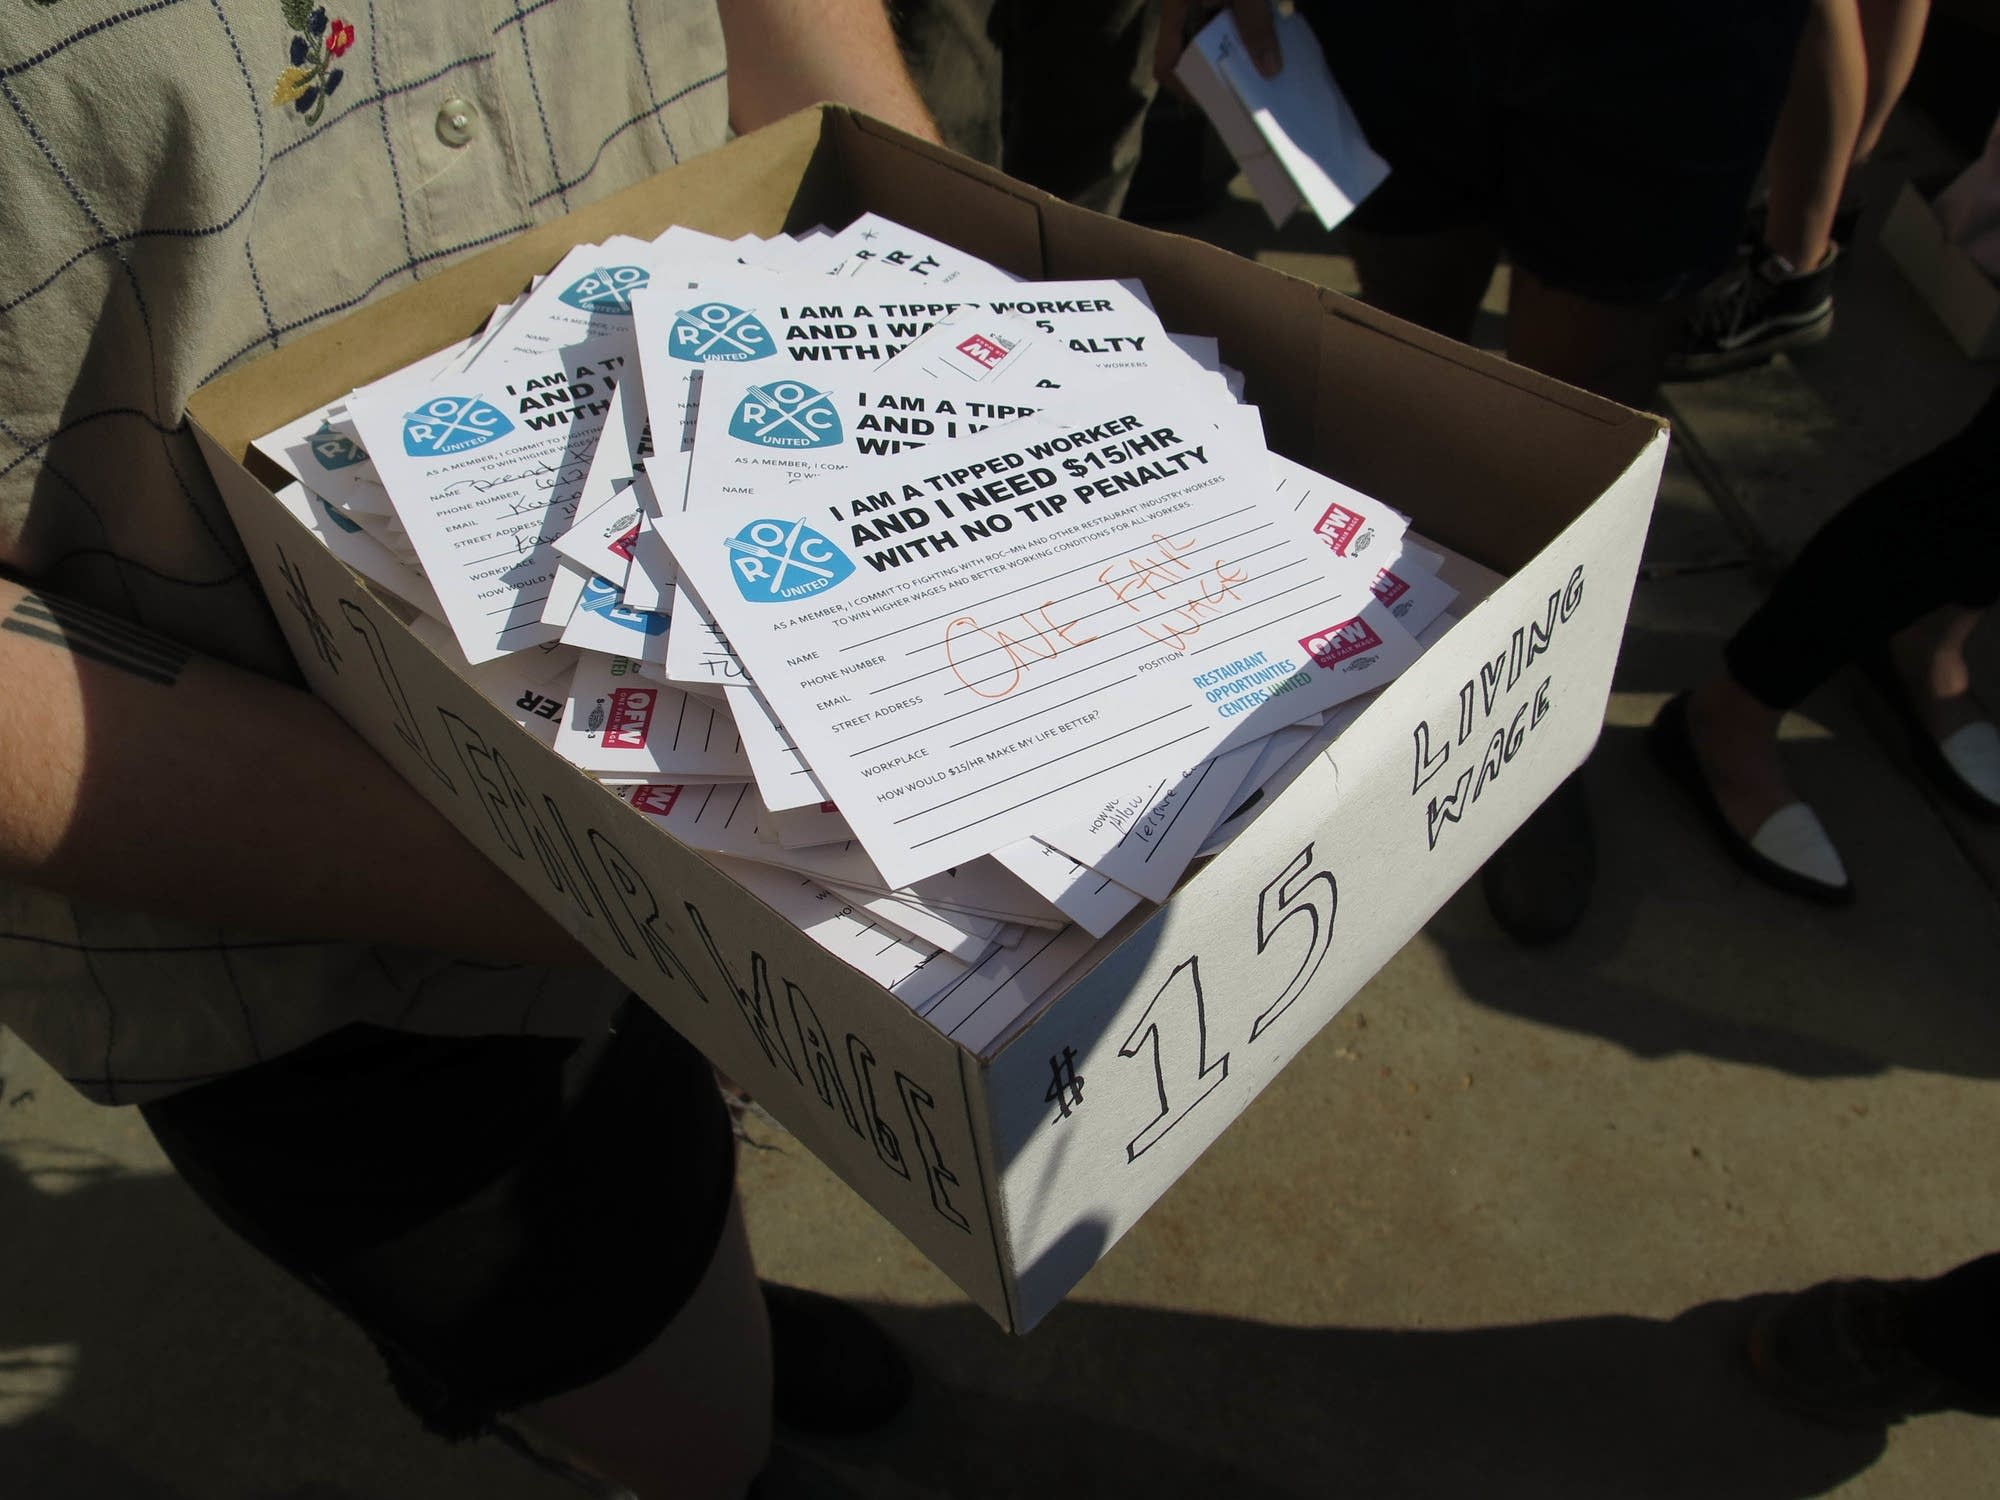 A box full of postcards to hand over to city officials.